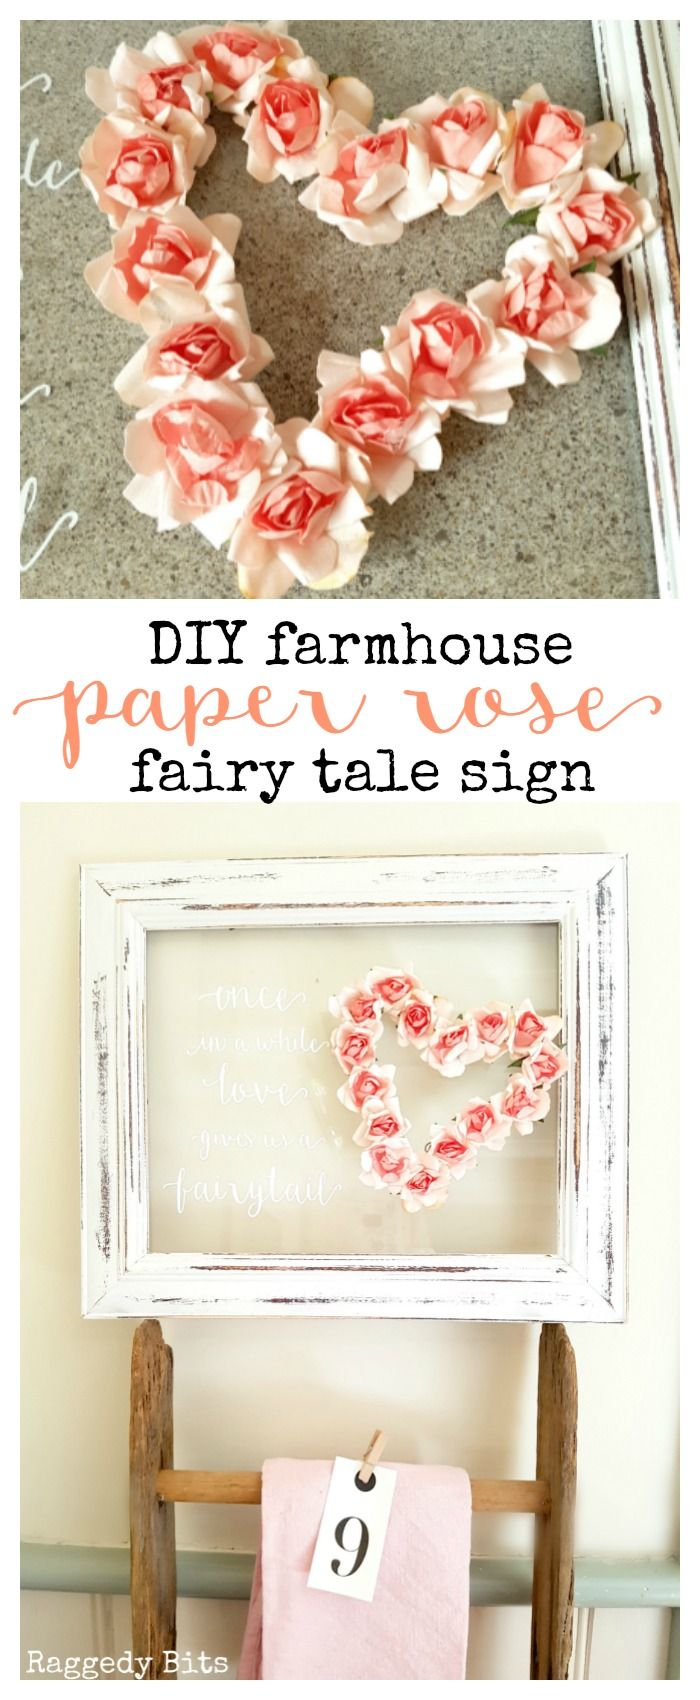 Using an old frame, paper flowers, Fusion Paint and some vinyl letters maker your very own DIY Farmhouse Paper Rose Fairy Tale Sign | Full tutorial | www.raggedy-bits.com